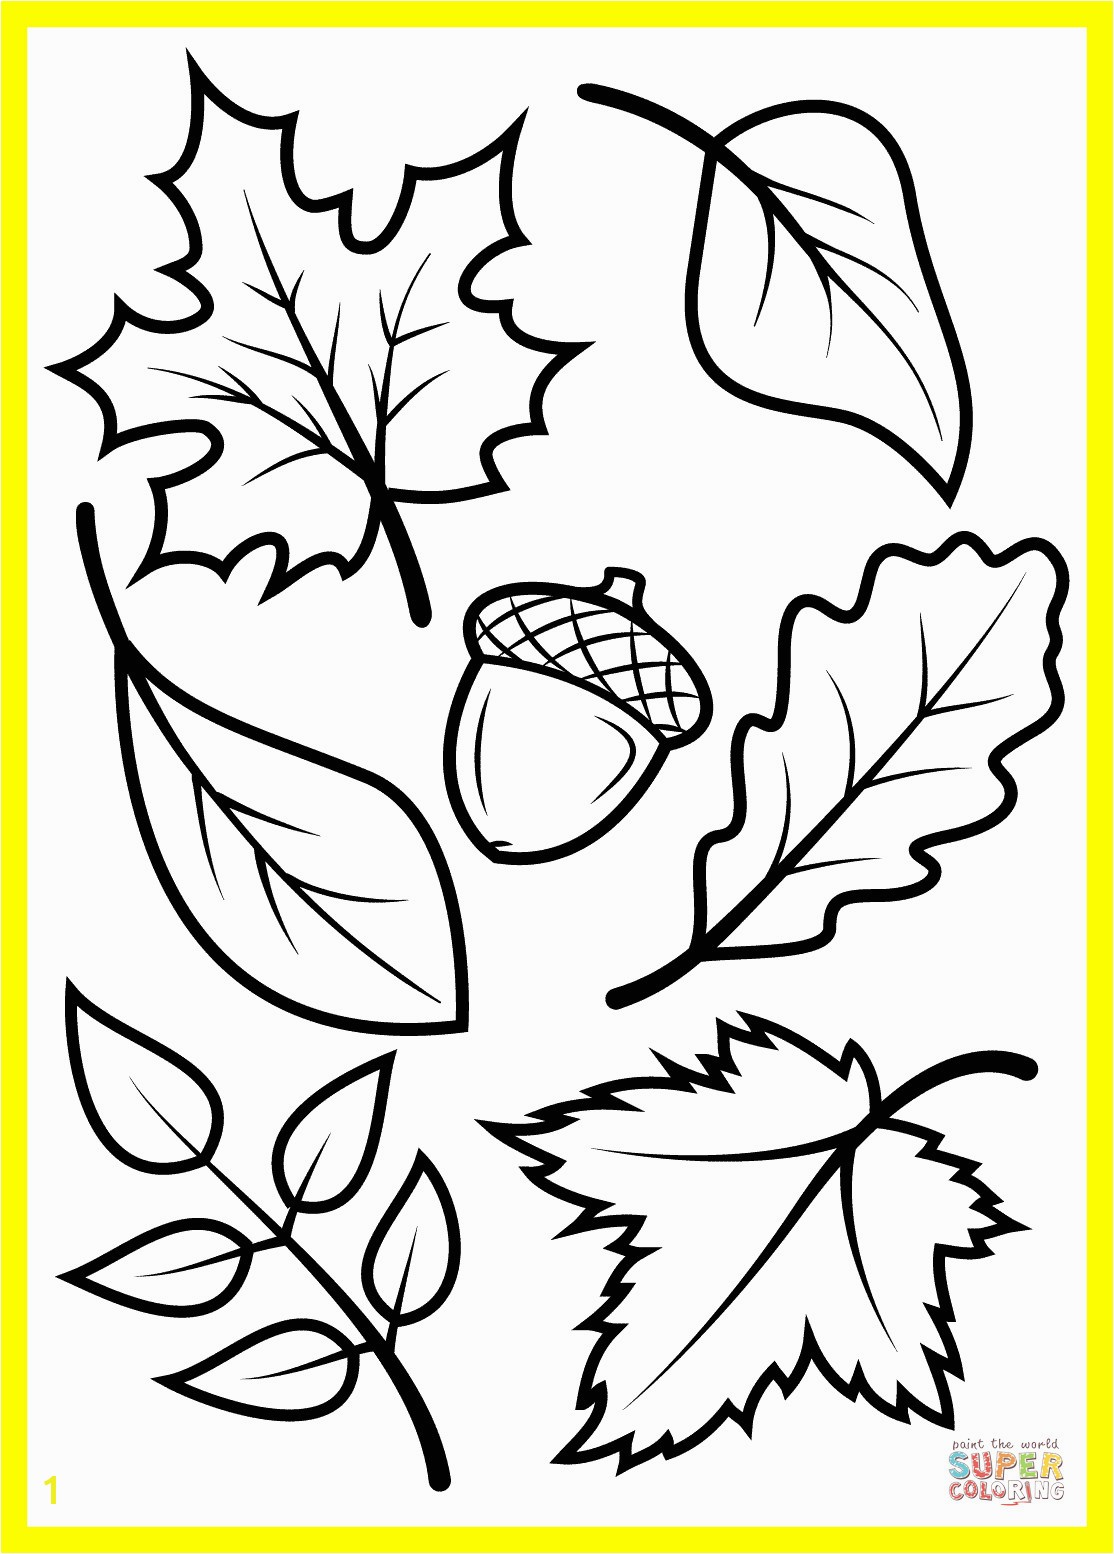 Free Christian Clipart Inspirational Engaging Fall Coloring Pages Printable 26 Kids New 0d Page for